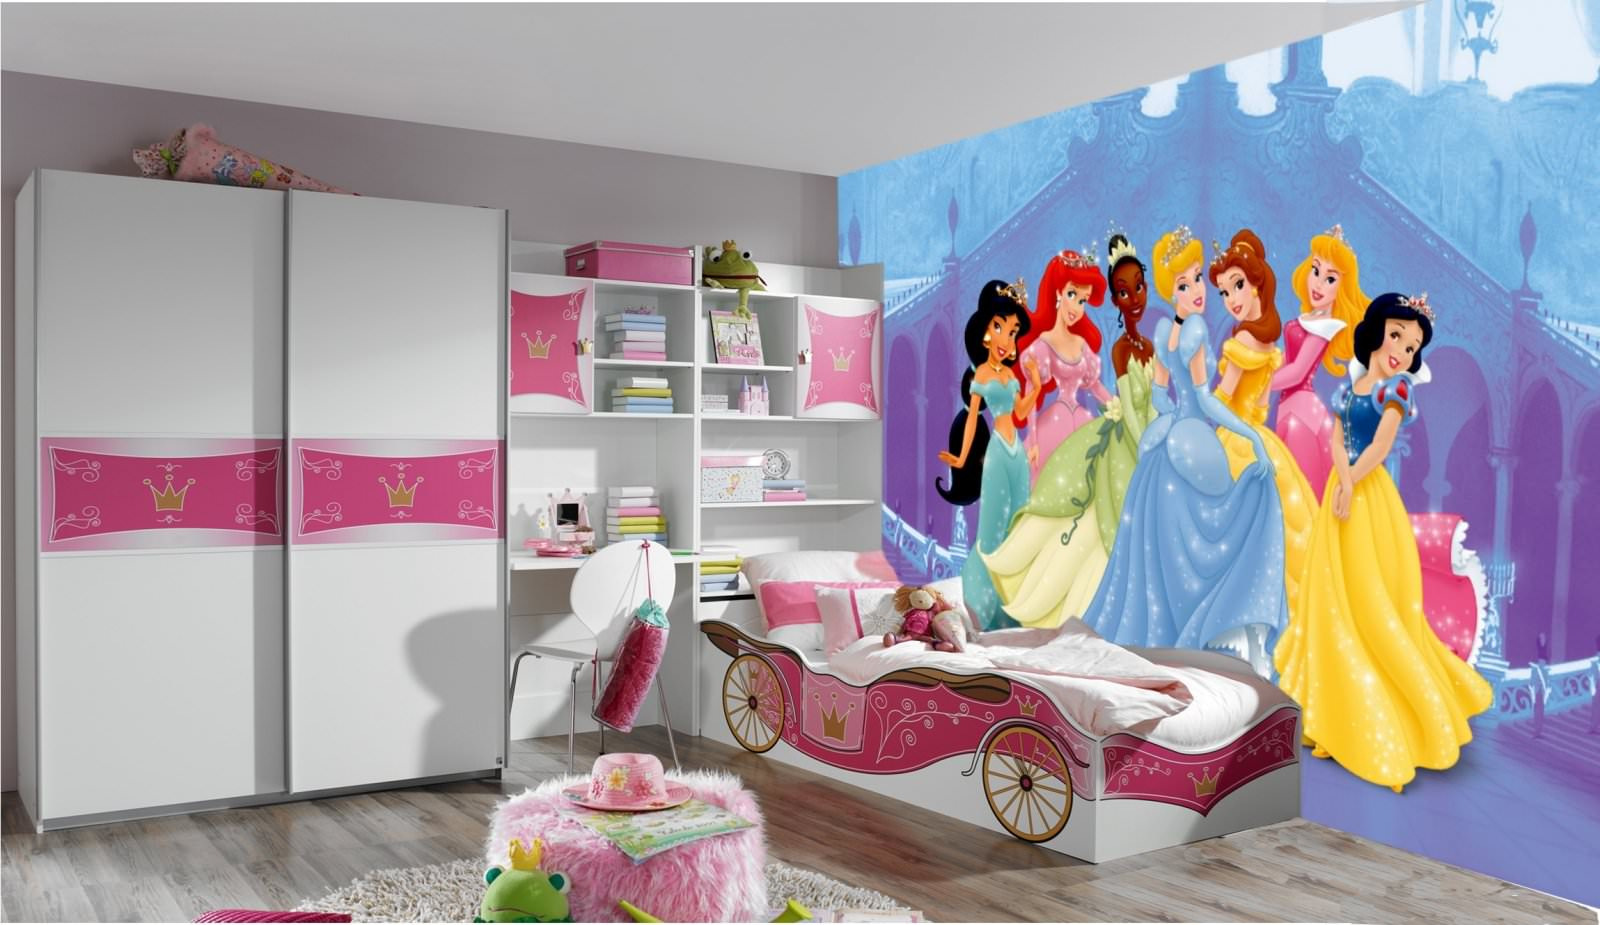 deco murale chambre enfant chambre design enfant fajno. Black Bedroom Furniture Sets. Home Design Ideas